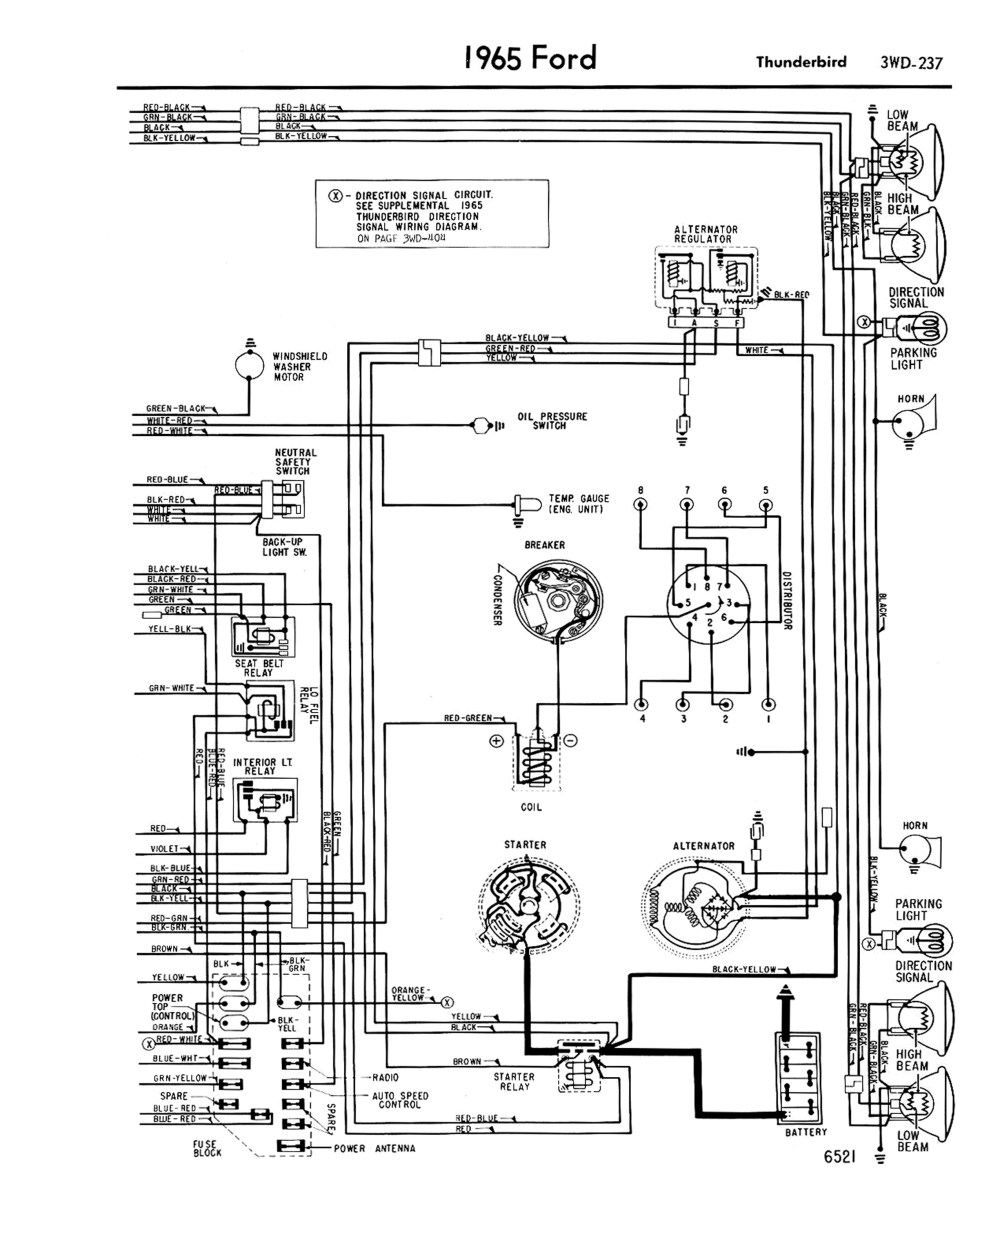 medium resolution of 68 thunderbird wiring diagram wiring diagram log 68 thunderbird ford vacuum routing diagrams free download wiring